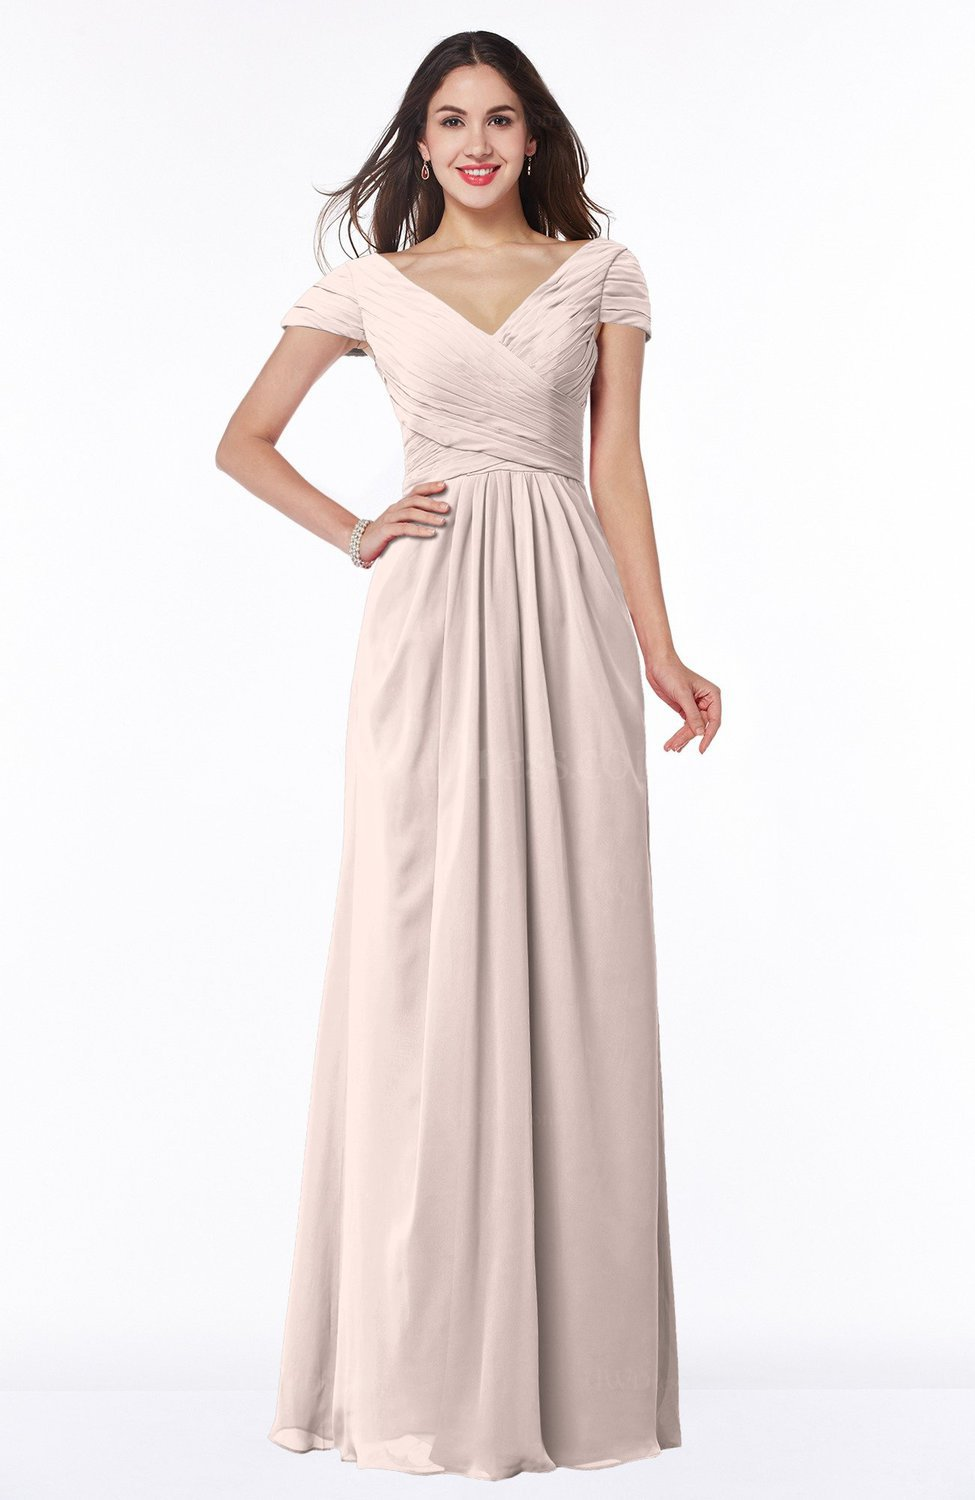 Bridesmaid Dresses - UWDress.com